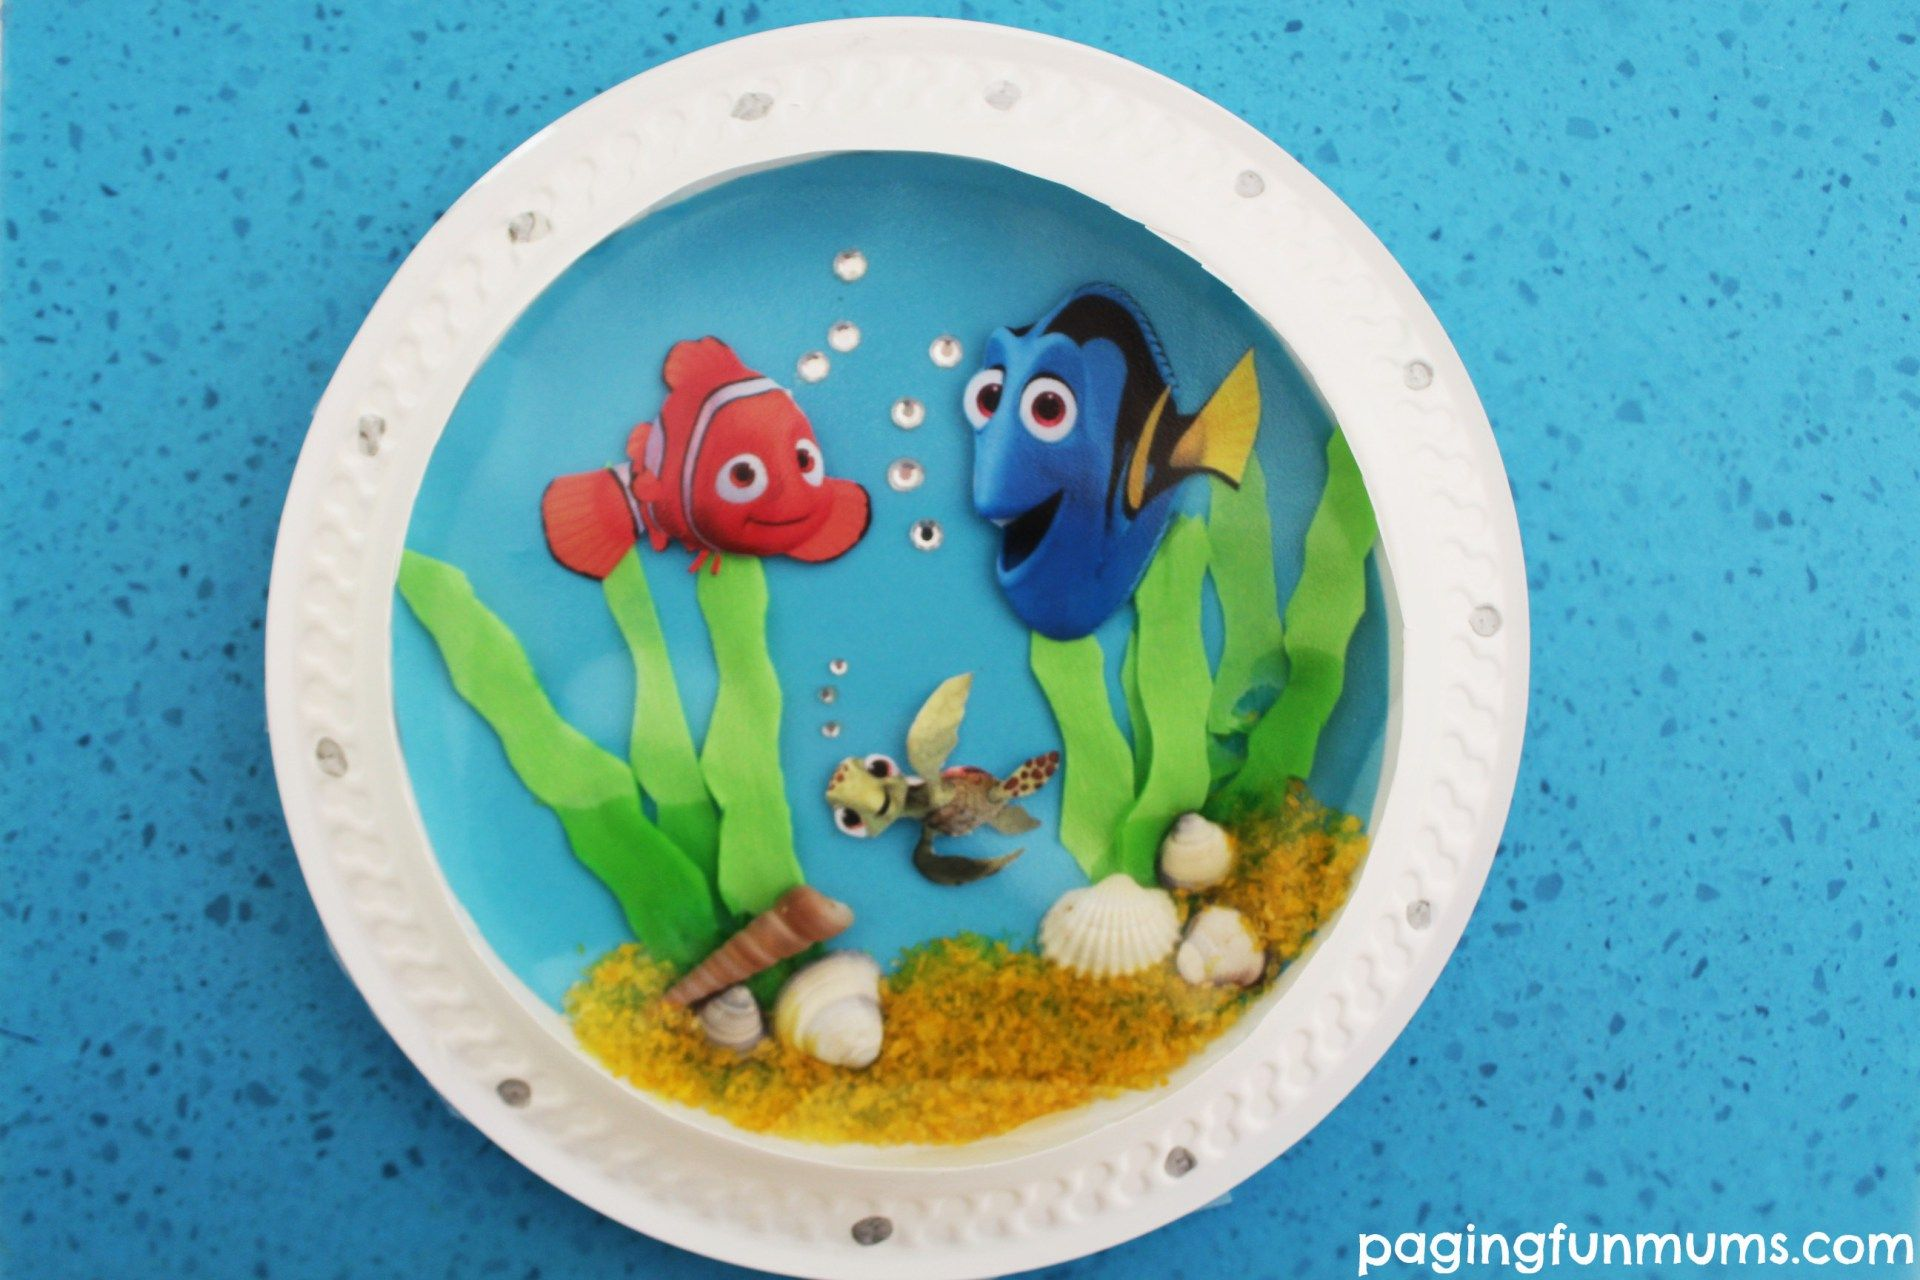 Tissue Paper Adorable Finding Dory Inspired Porthole Fish Craft